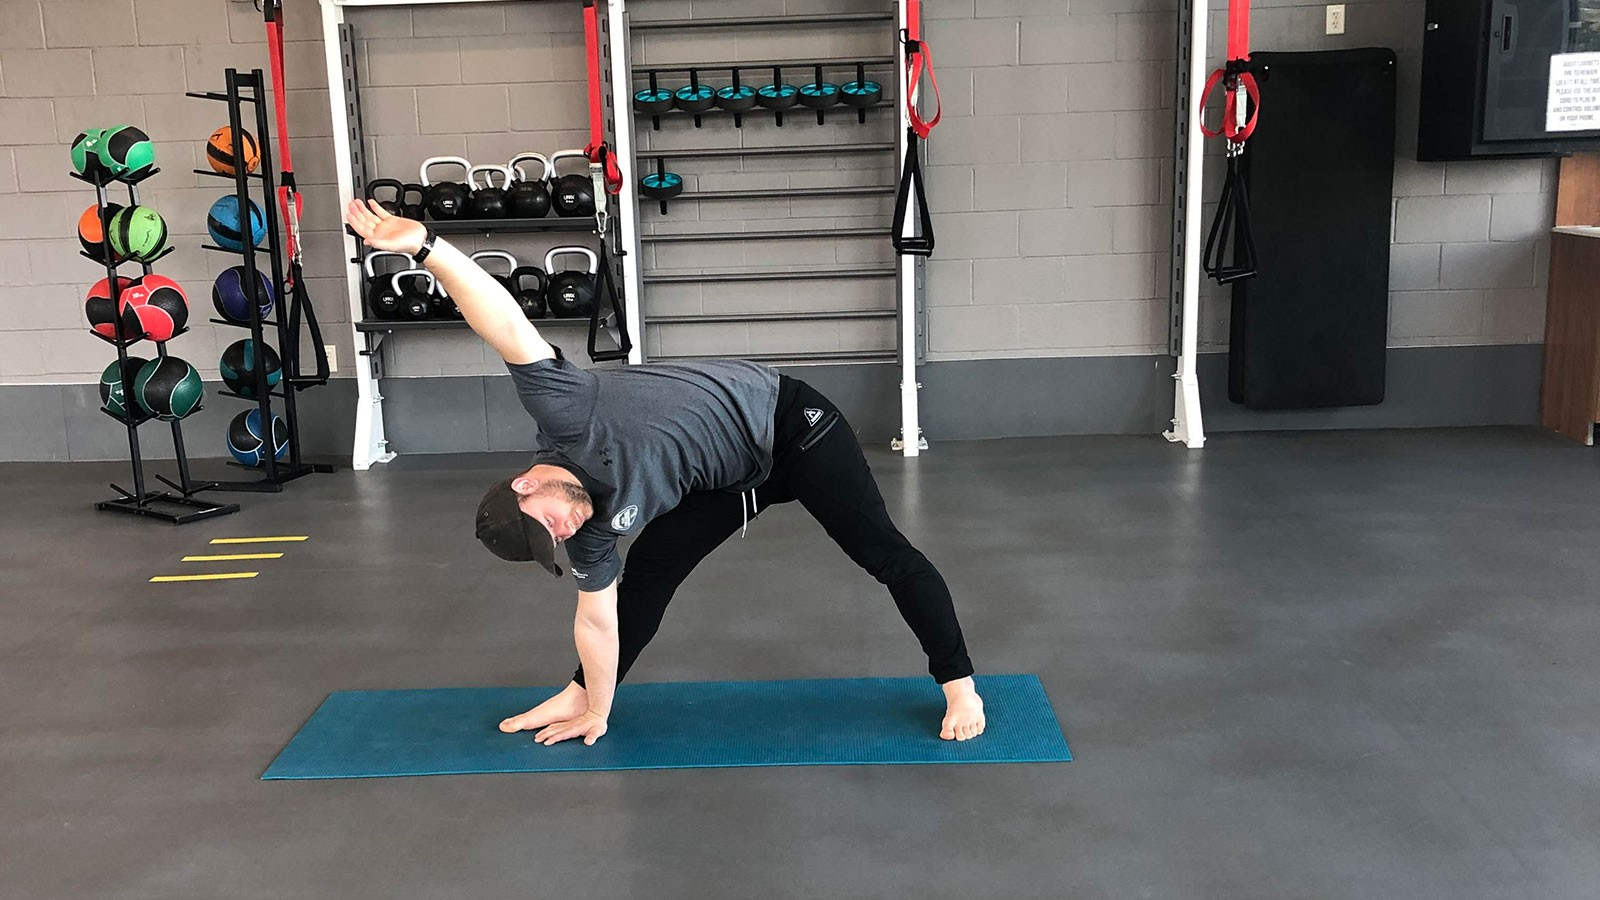 trainer doing a workout move.